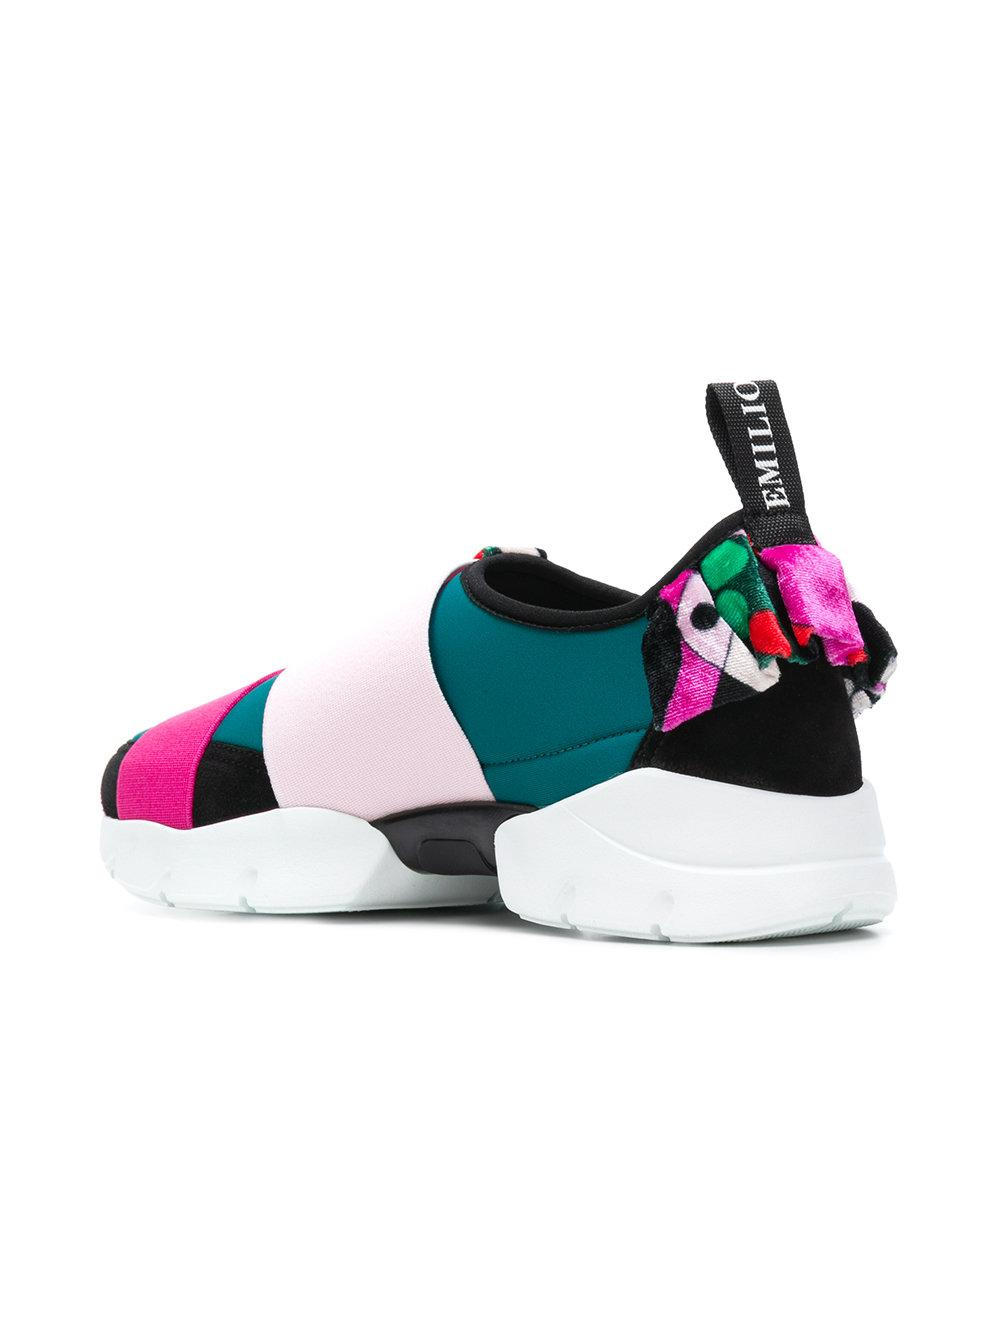 on Lyst Slip Sneakers One City Pucci Emilio rqrXB